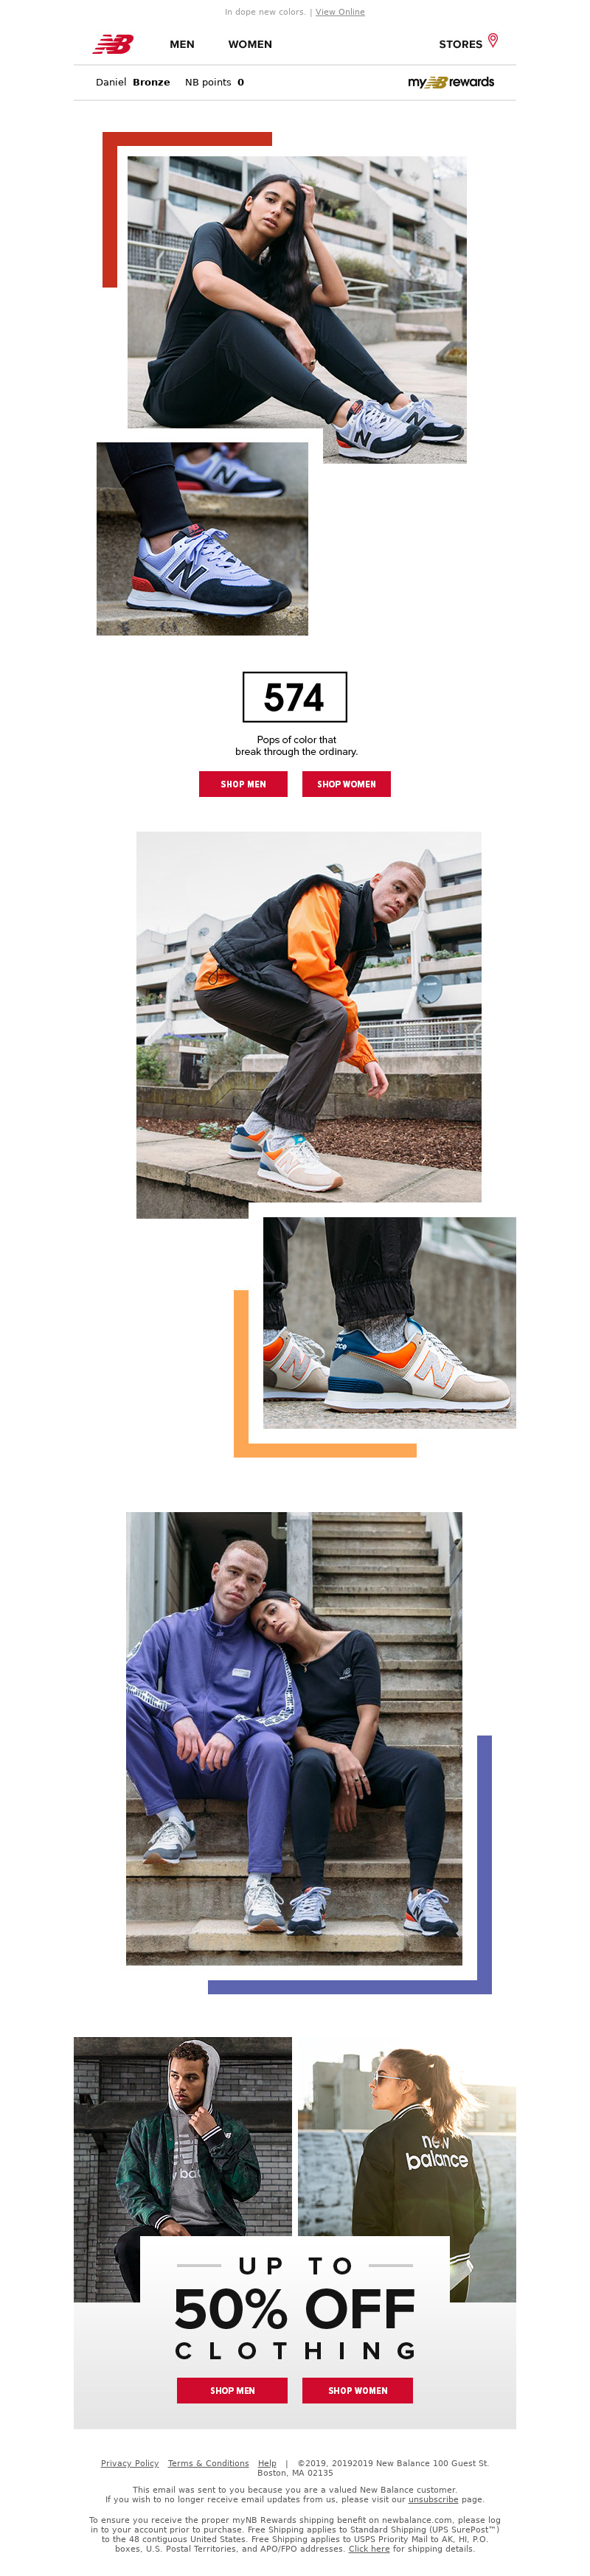 Shoe and footwear email from New Balance